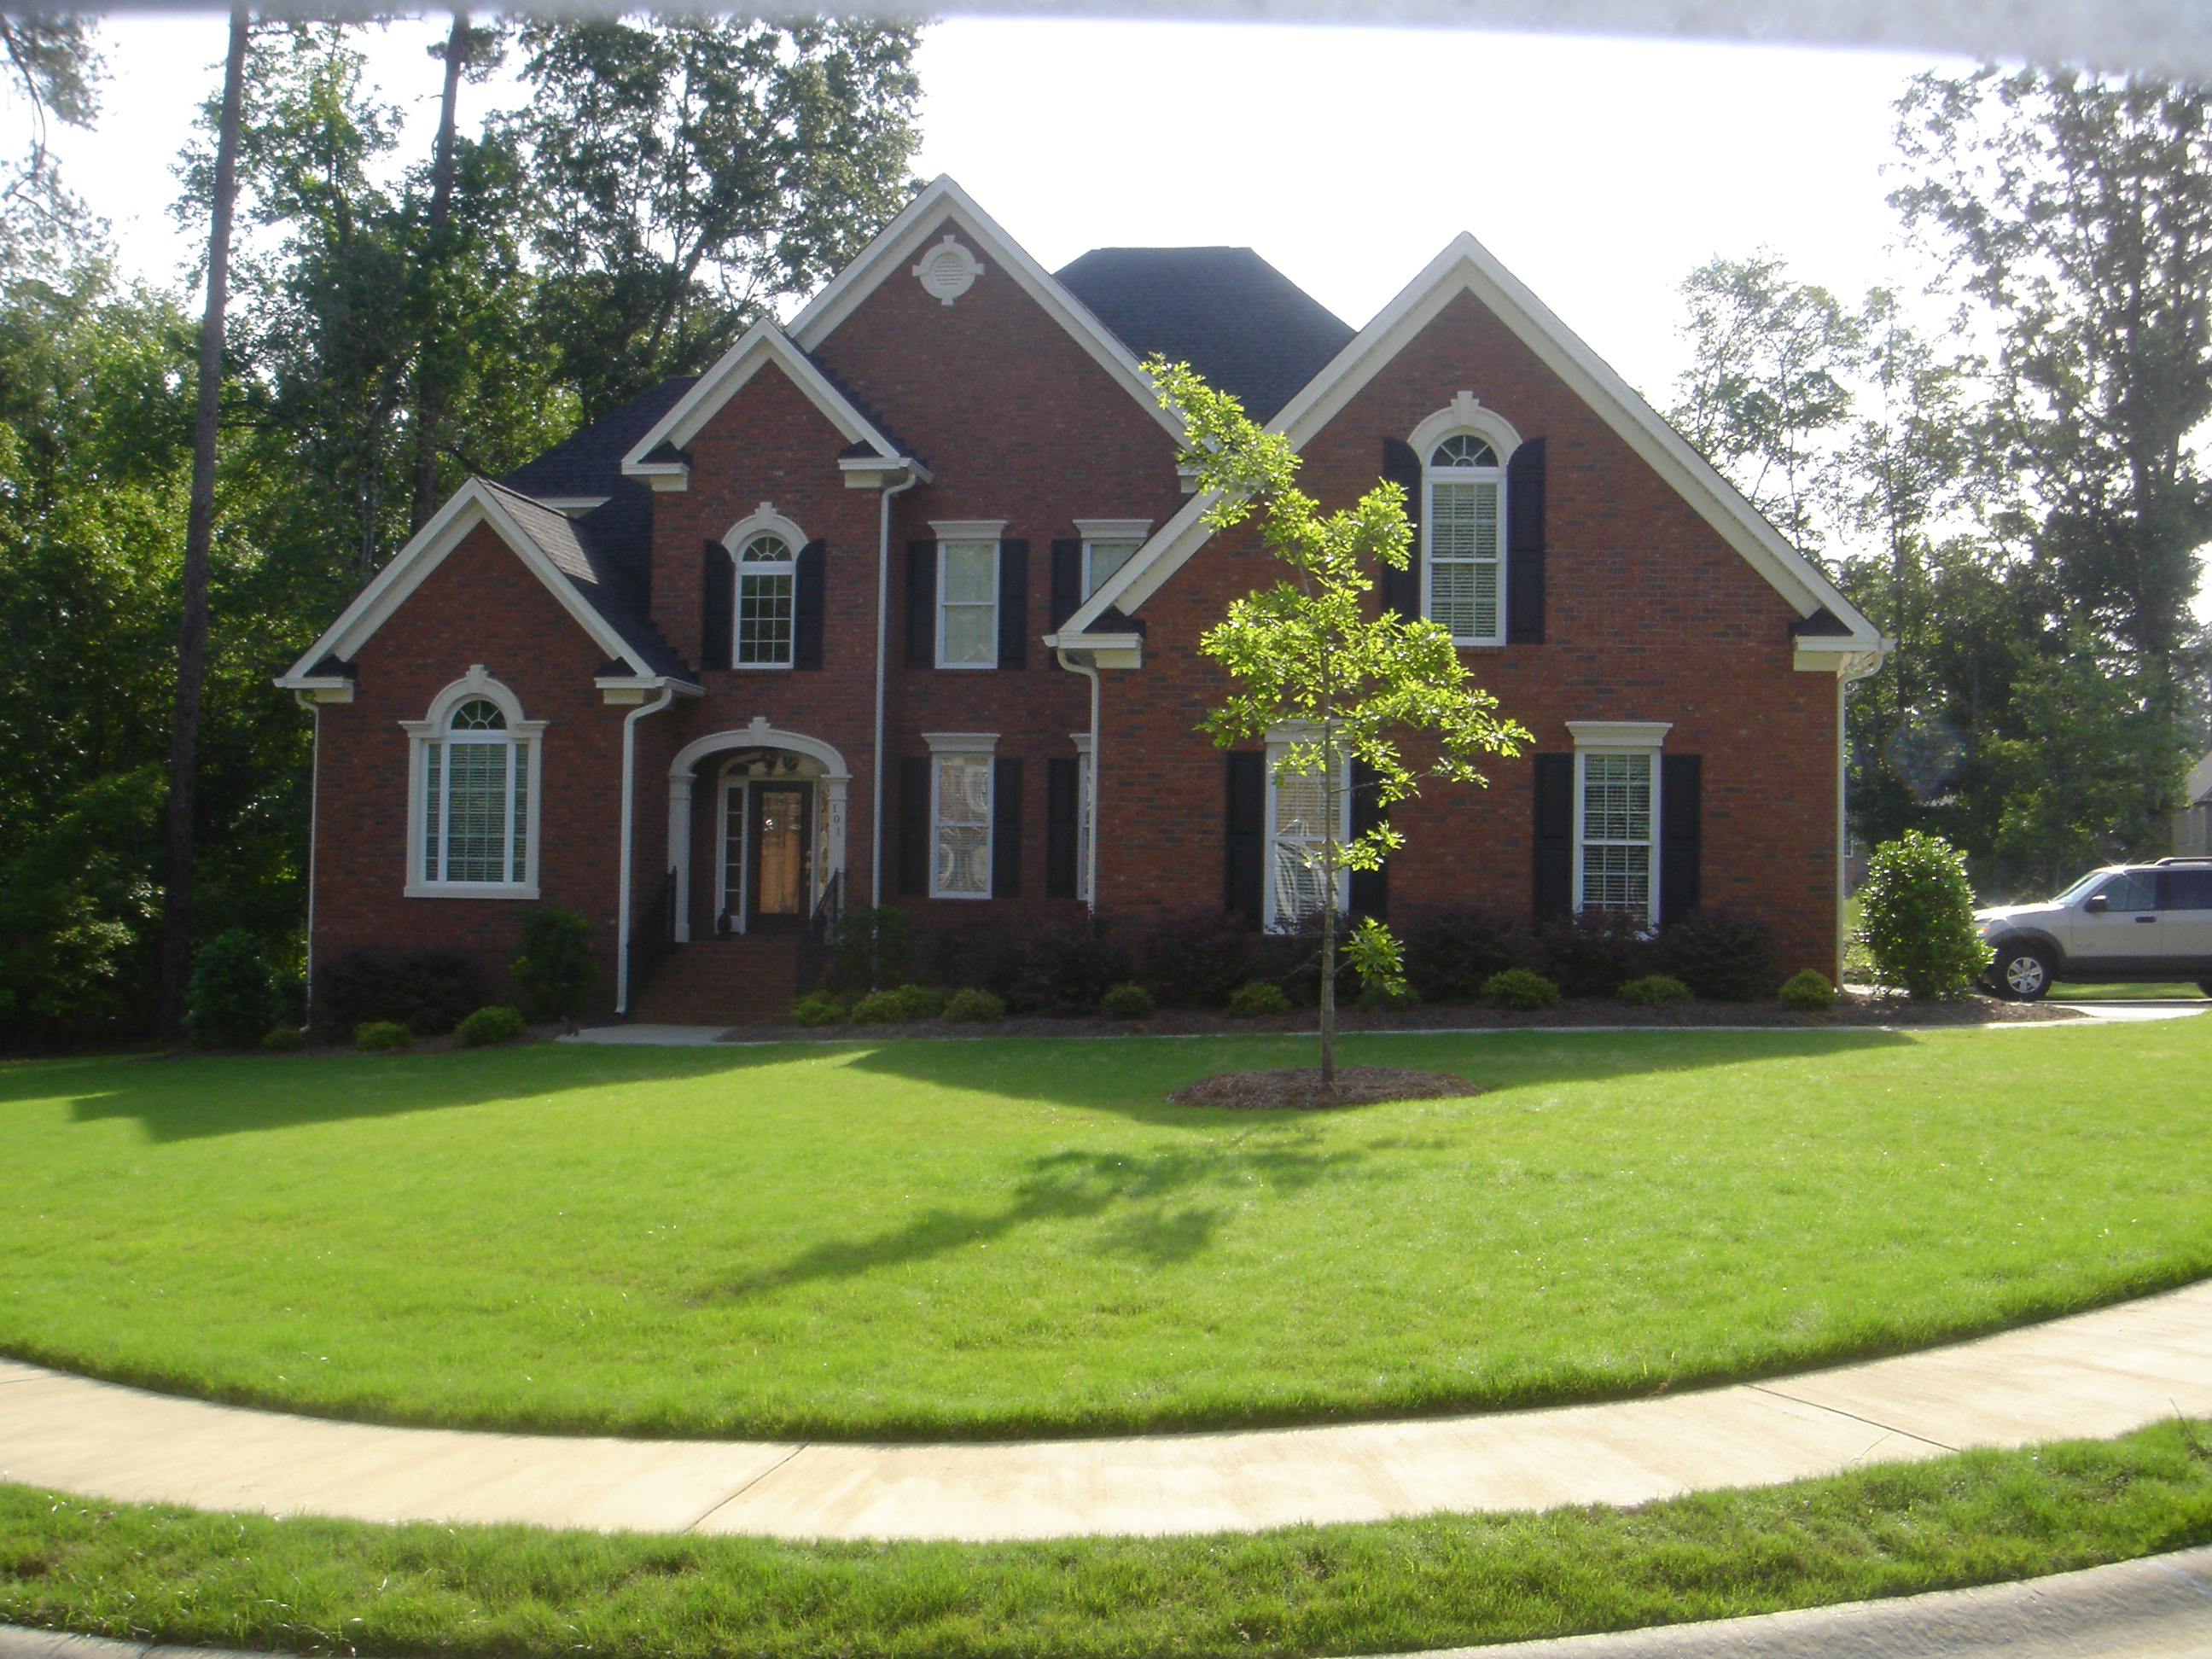 Beautiful Brick Traditional home in Kleckley Colony in Lexington SC, Jason Compton is now in charge of marketing.